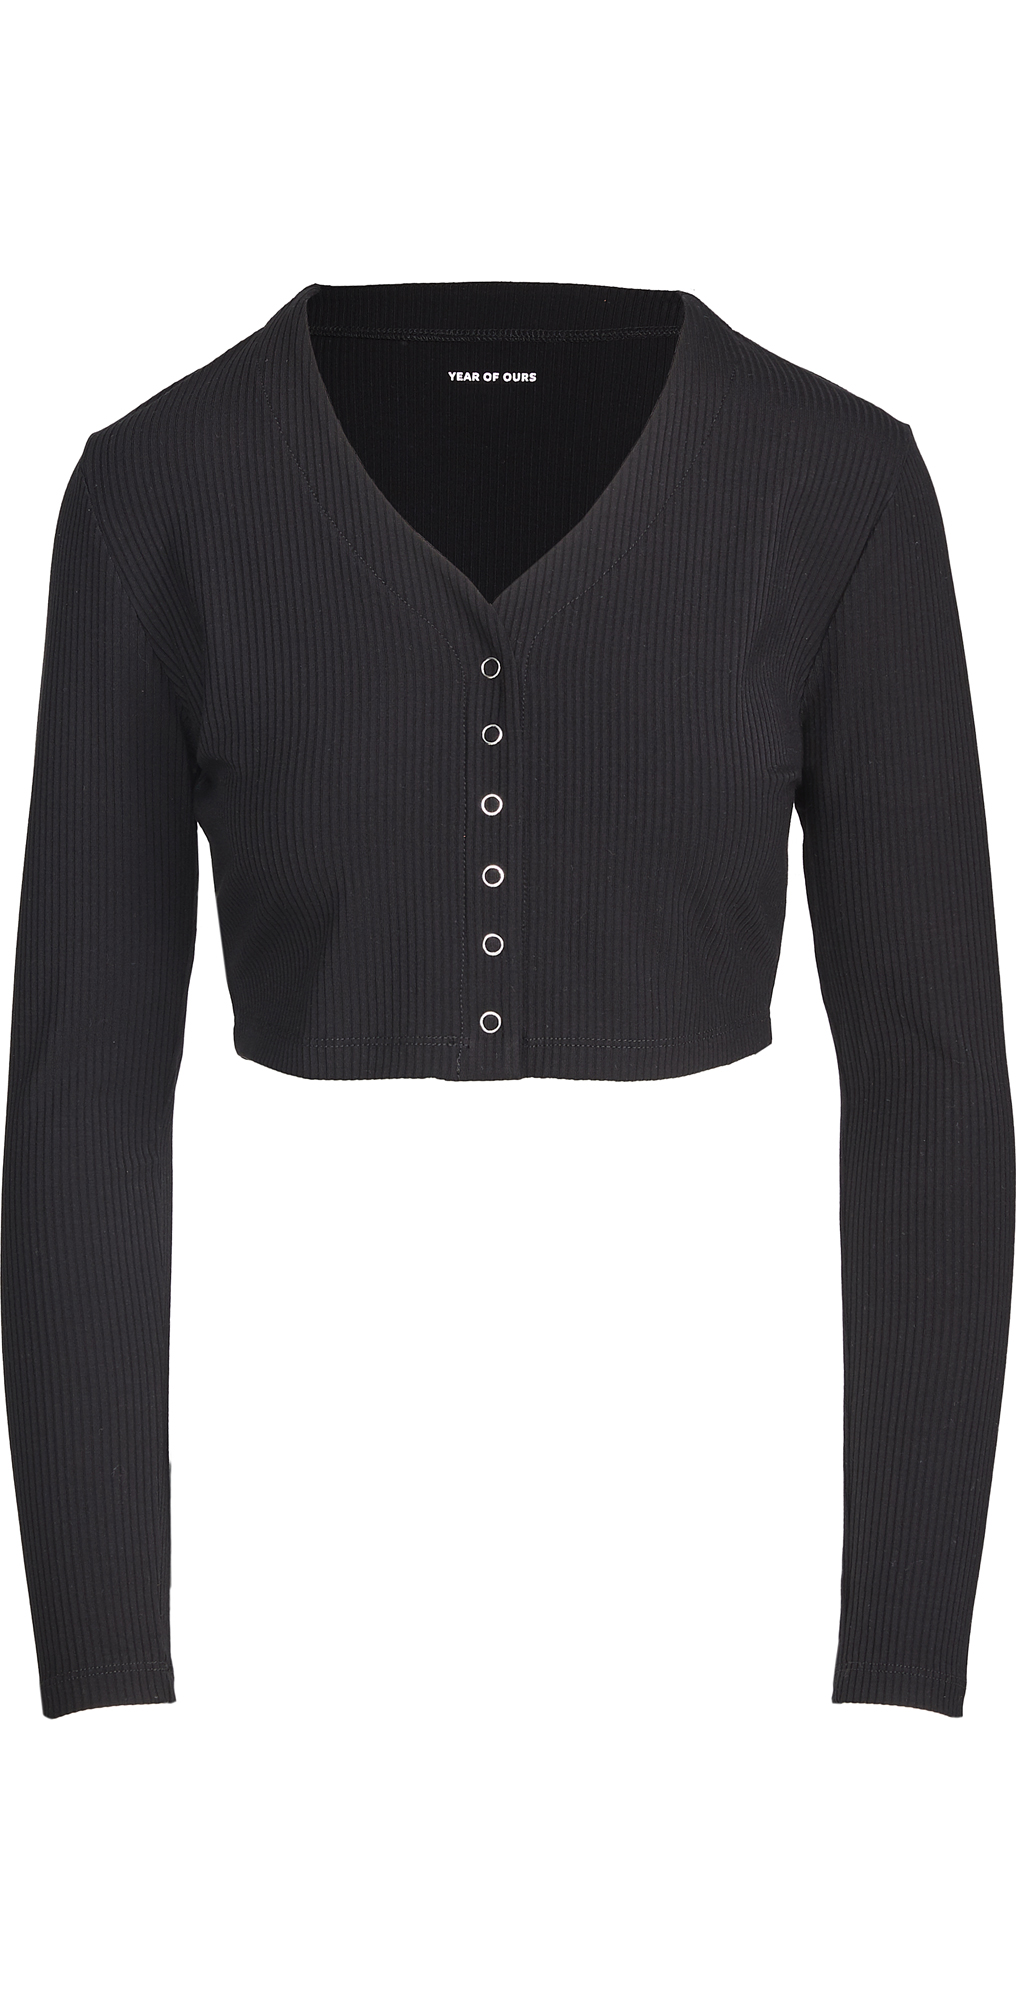 Year of Ours Ribbed Cropped Cardi